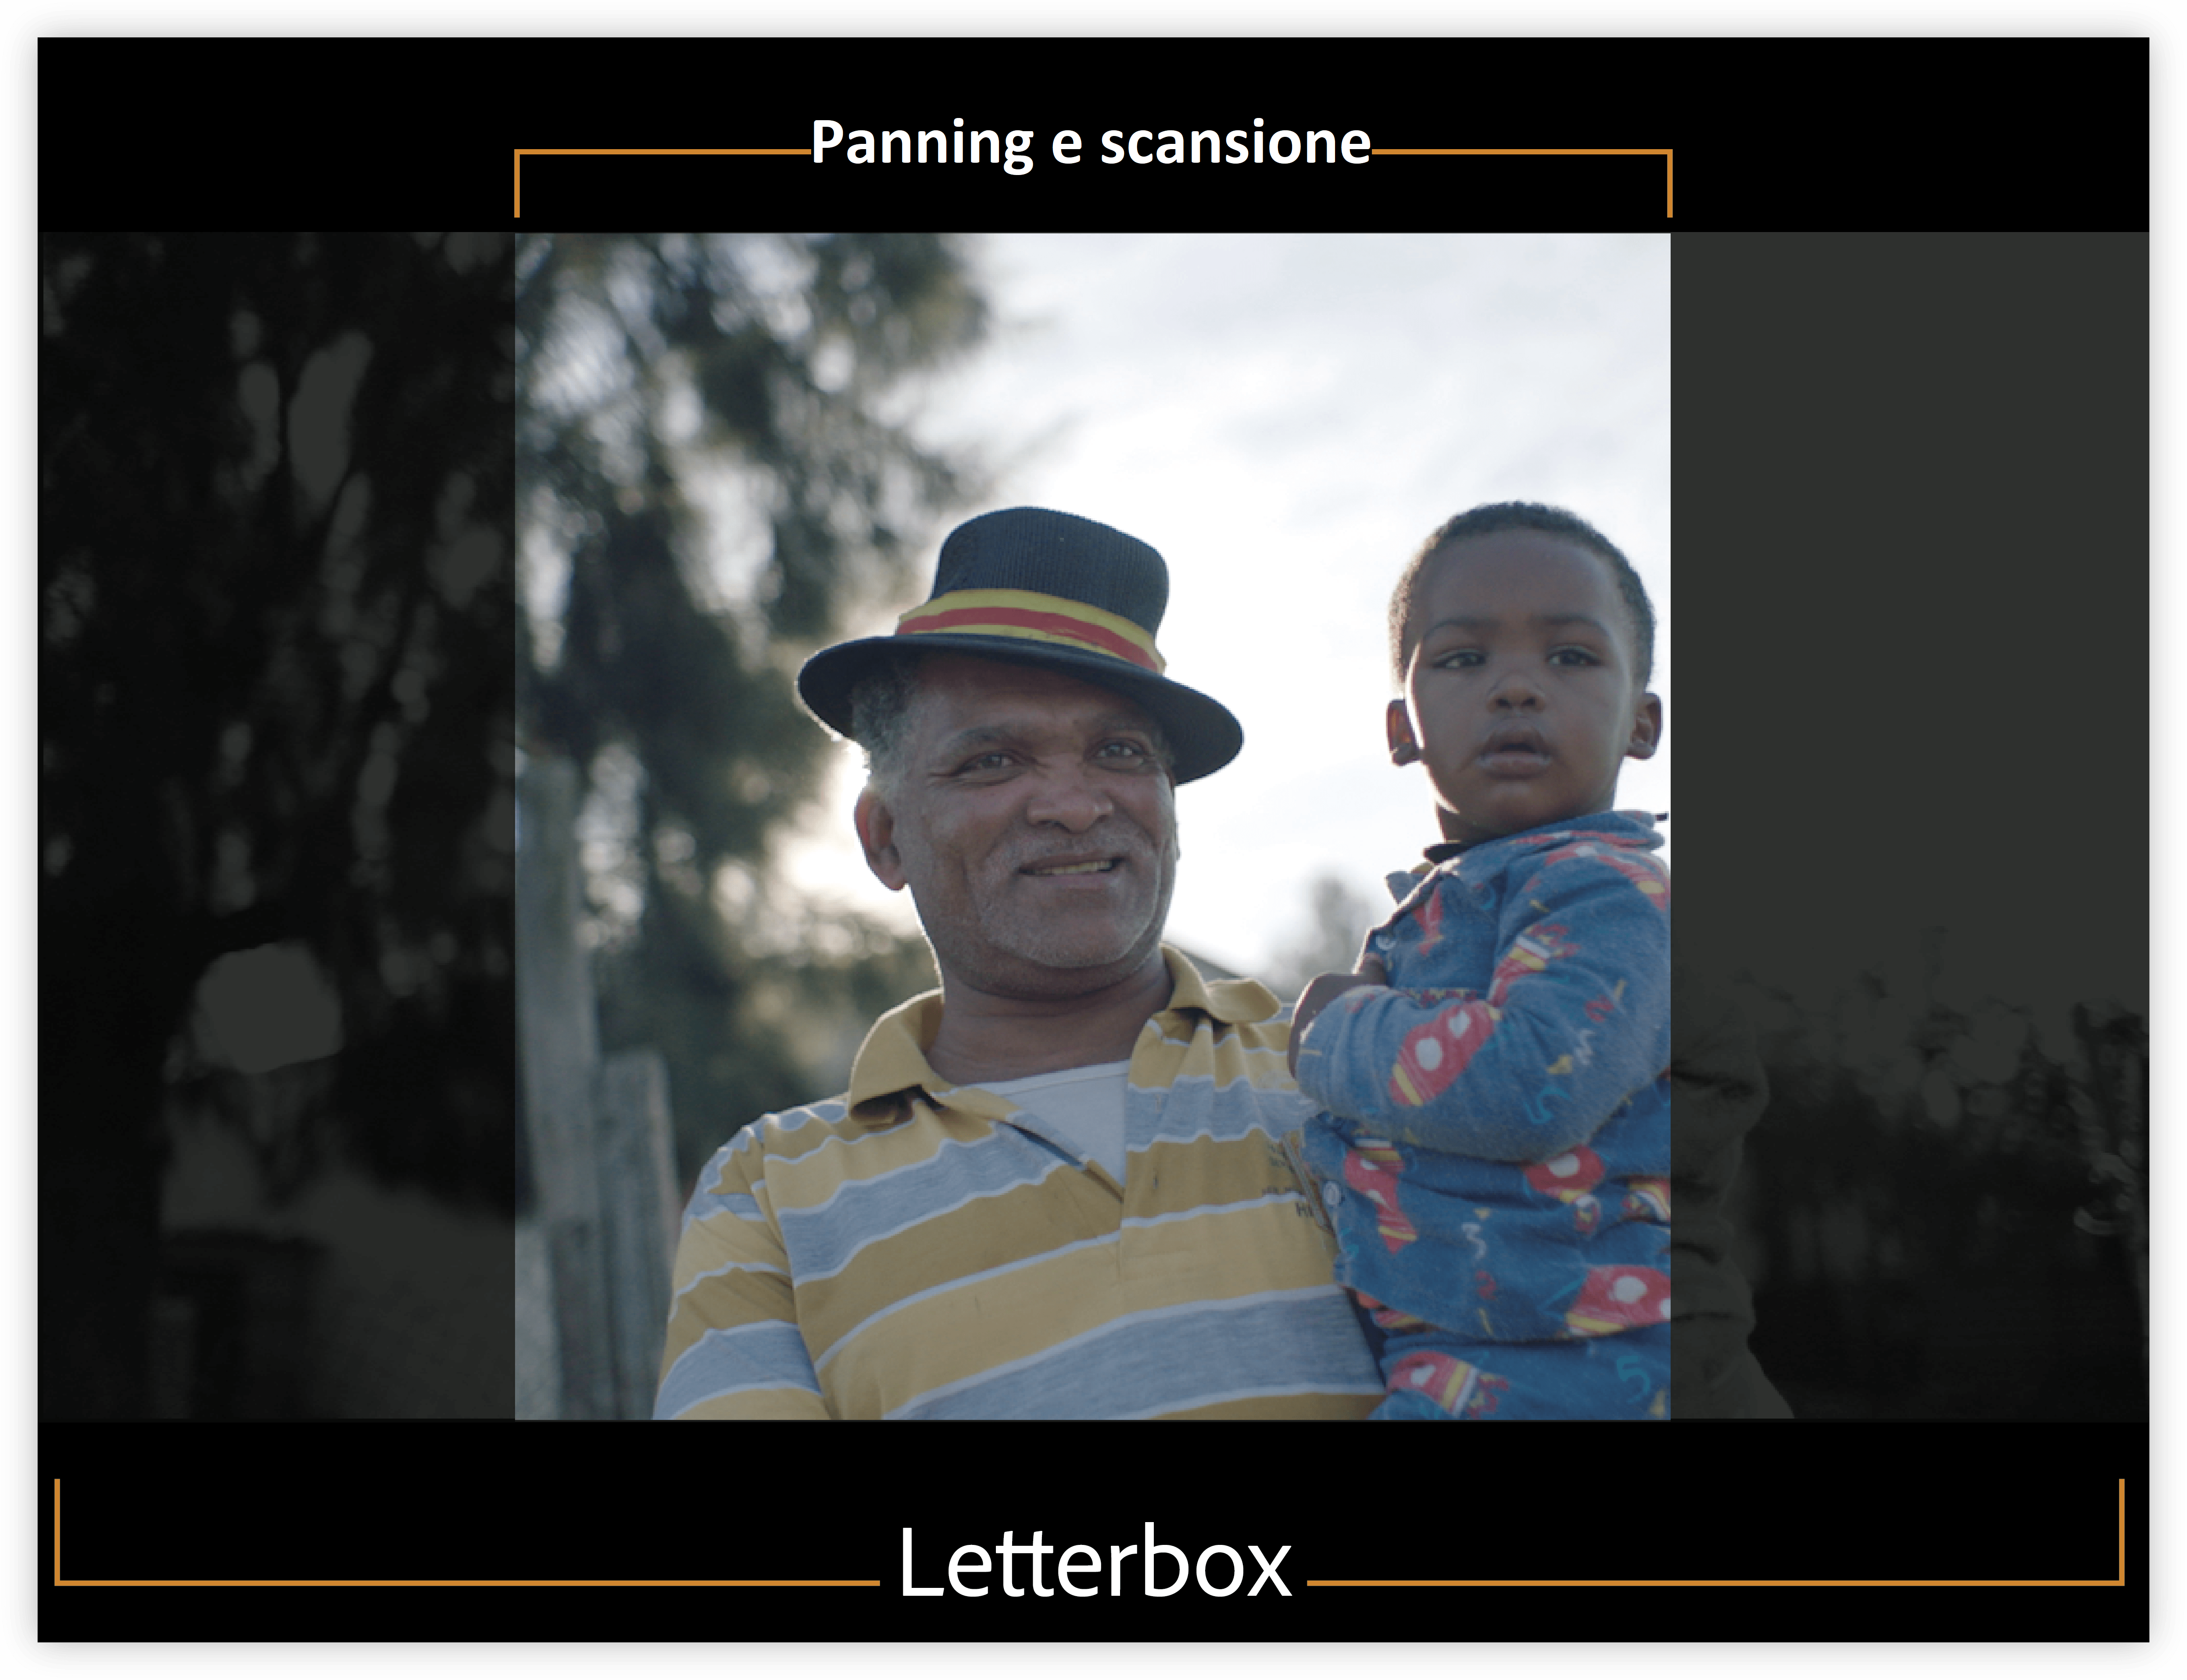 Letterboxing, panning e scansione